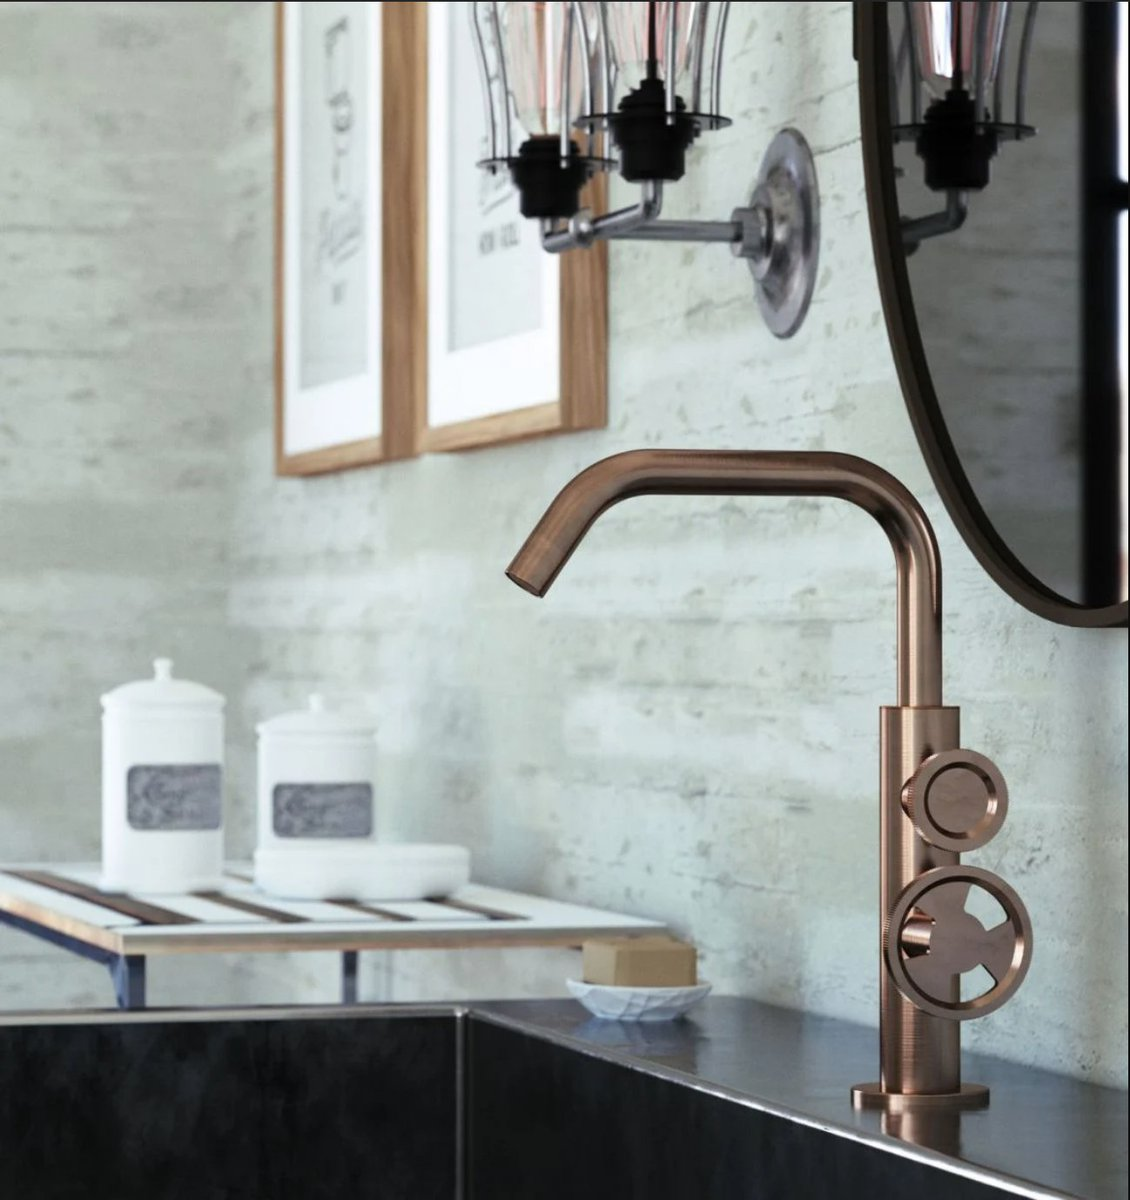 Finishes are what it's all about at the moment! F&B's brand of the week is @arteform. Get more bathroom inspiration here hubs.ly/H0JZtM30